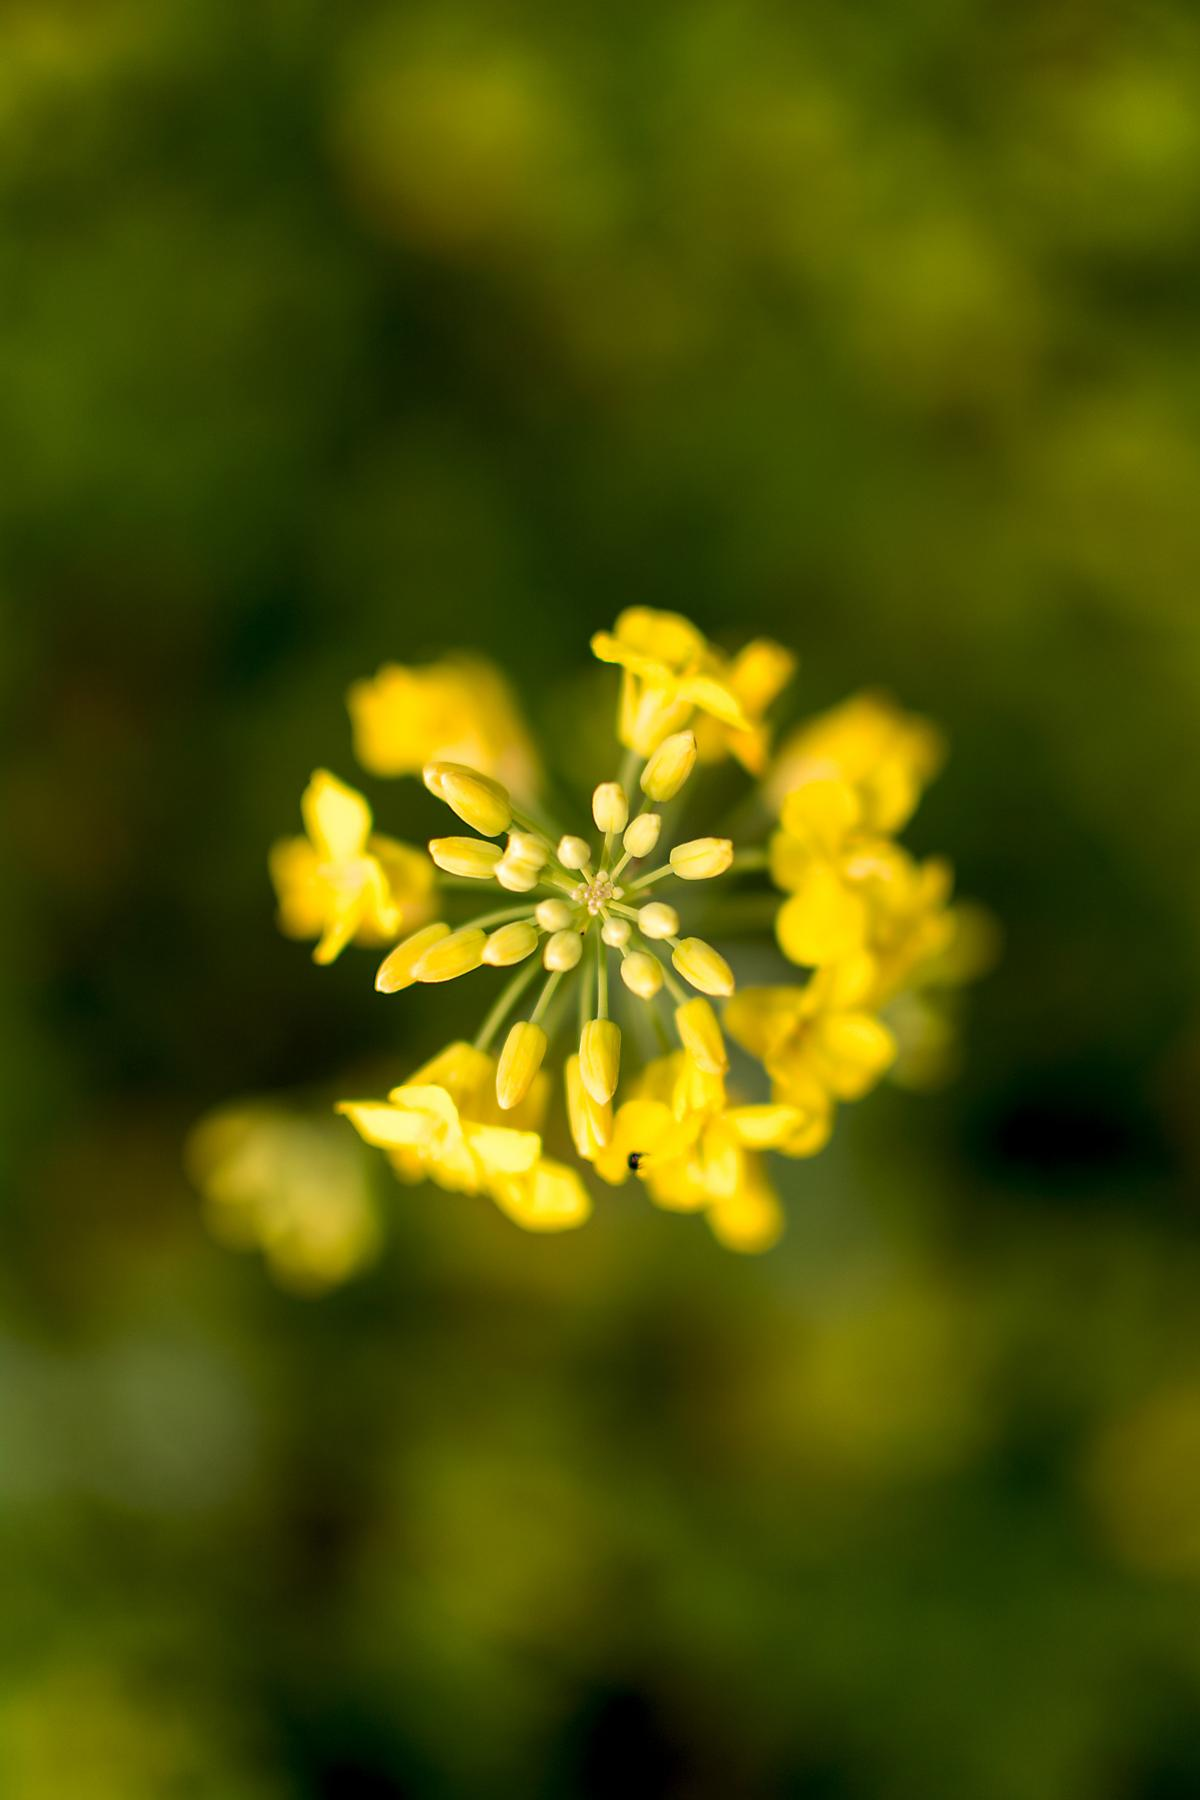 Canola Rape Flower Close-Up - Free Image For Commercial Use